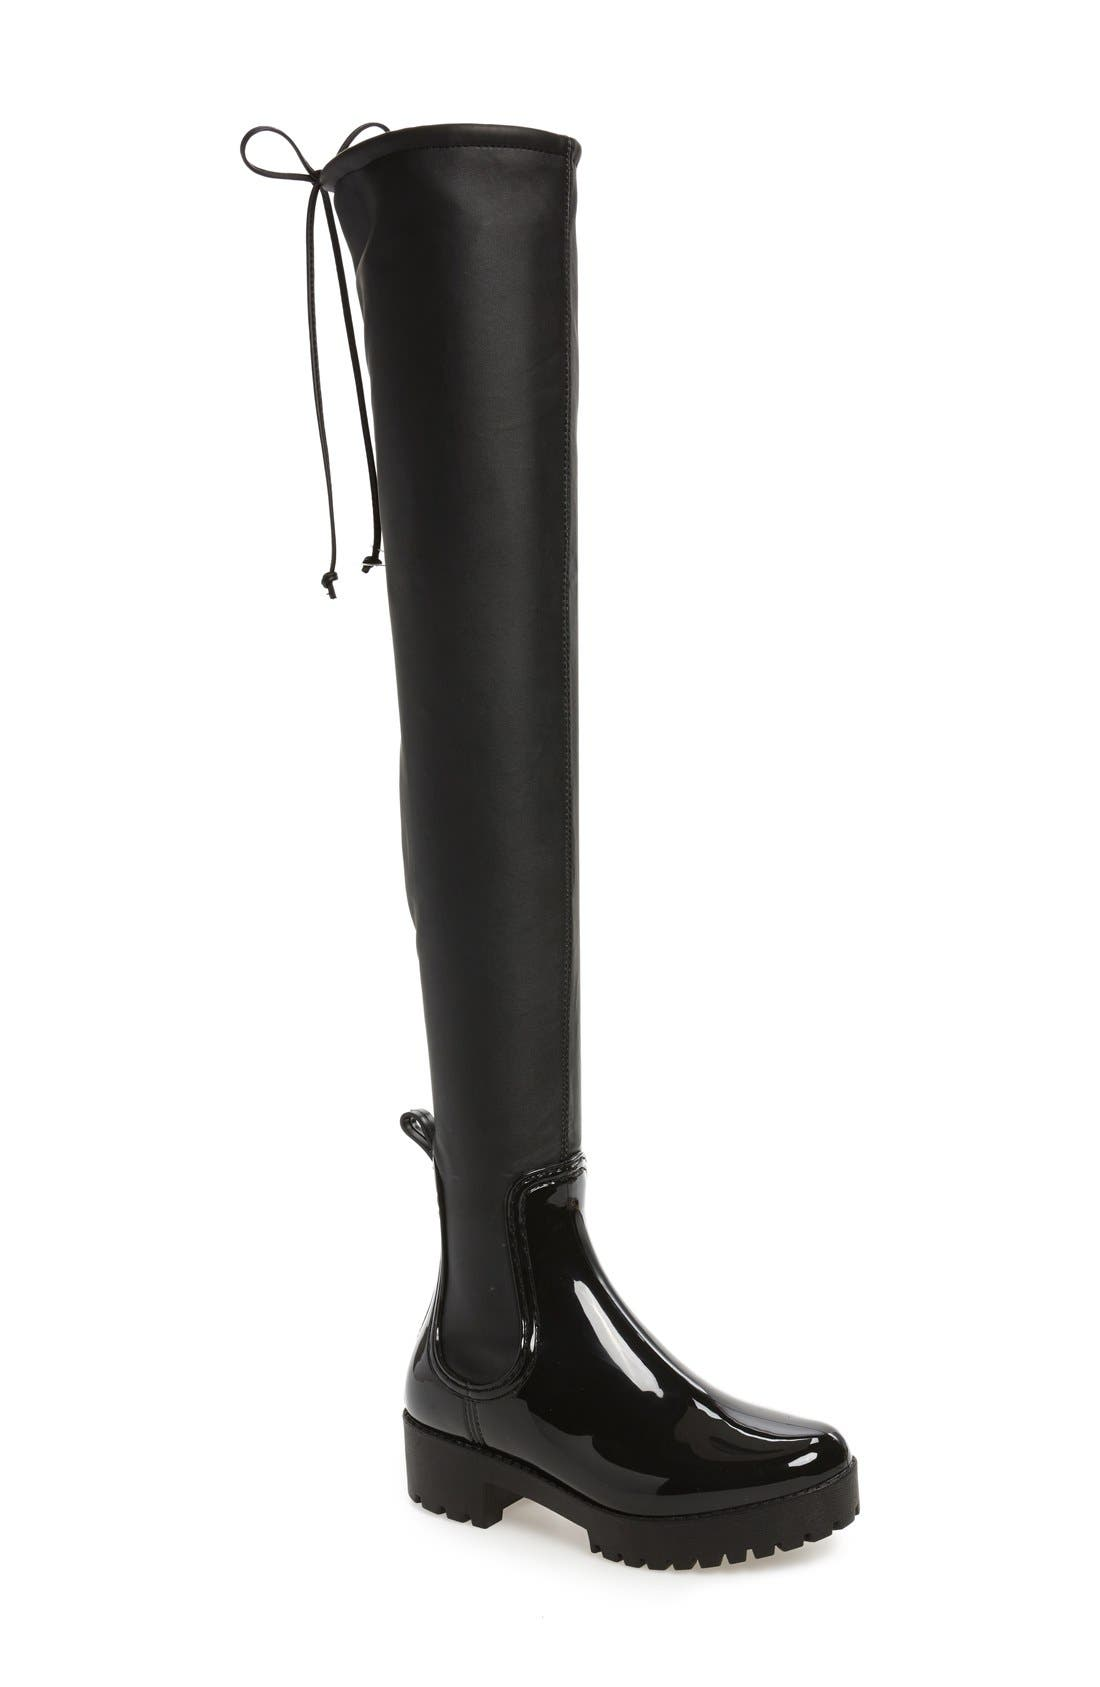 Cloudy Over the Knee Rain Boot,                             Main thumbnail 1, color,                             005